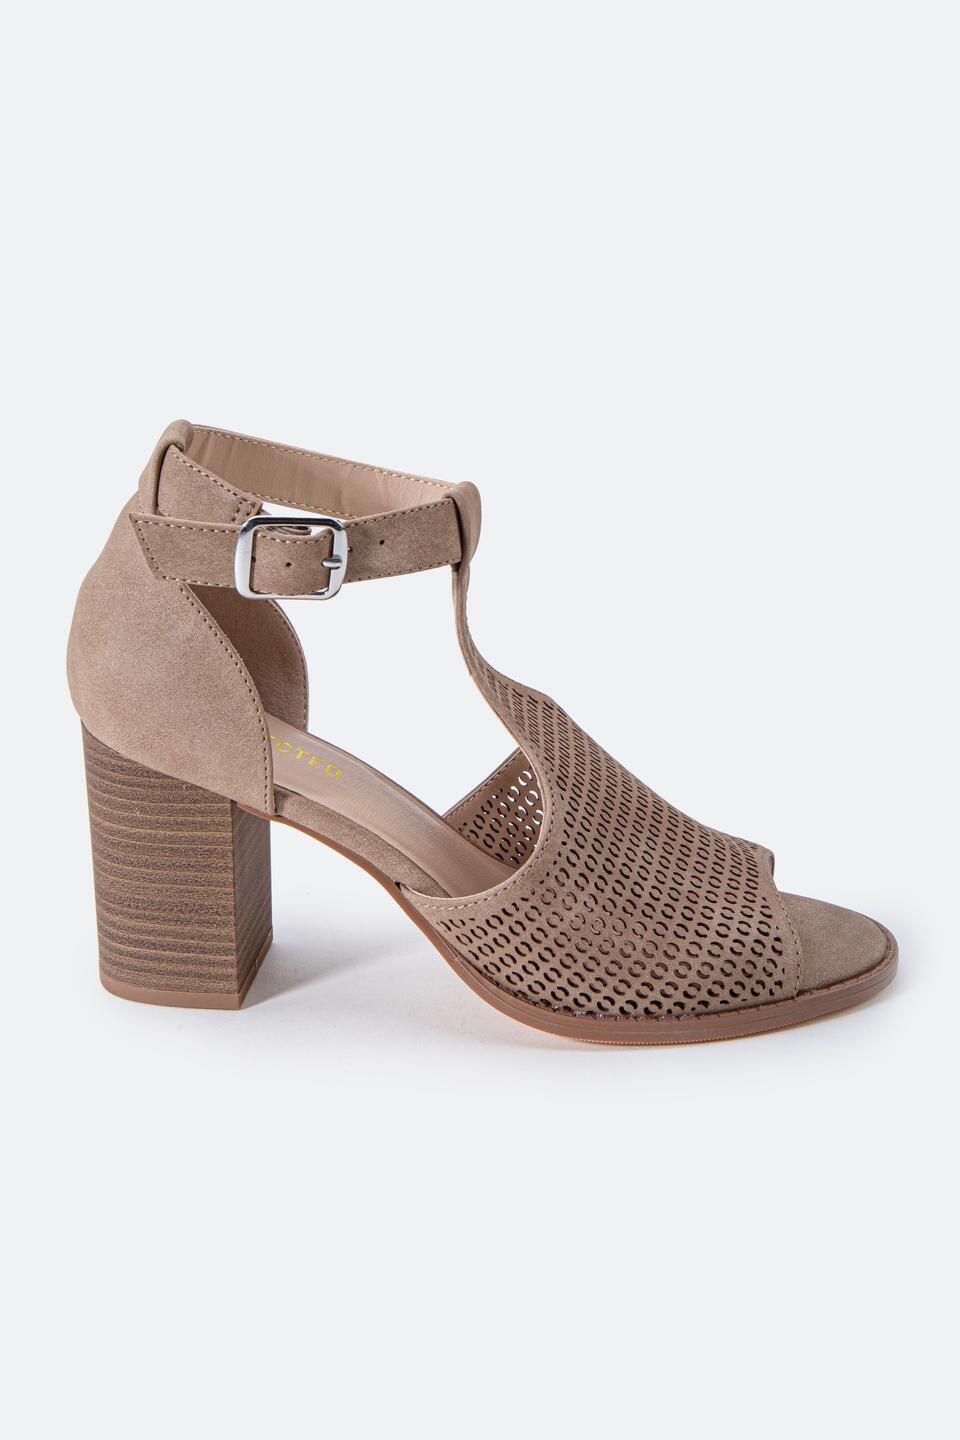 Restricted Fayla Perforated Heeled Sandal- Taupe 5